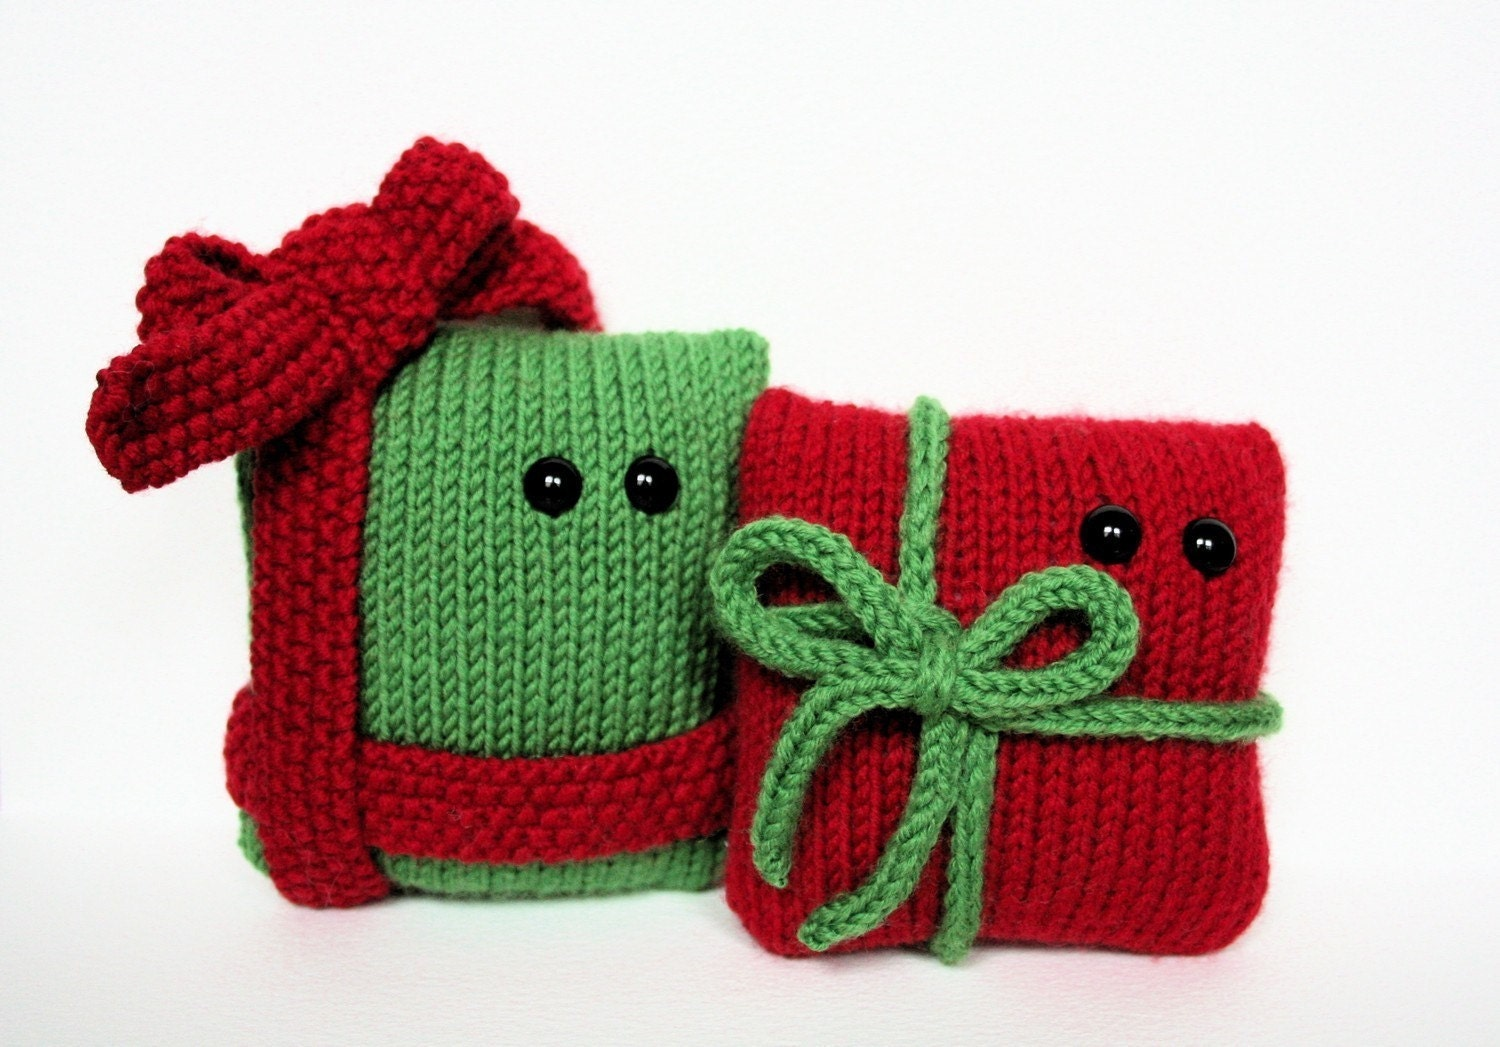 Free Knitting Patterns For Christmas Gifts : Knit your own amigurumi Christmas presents pdf knitting